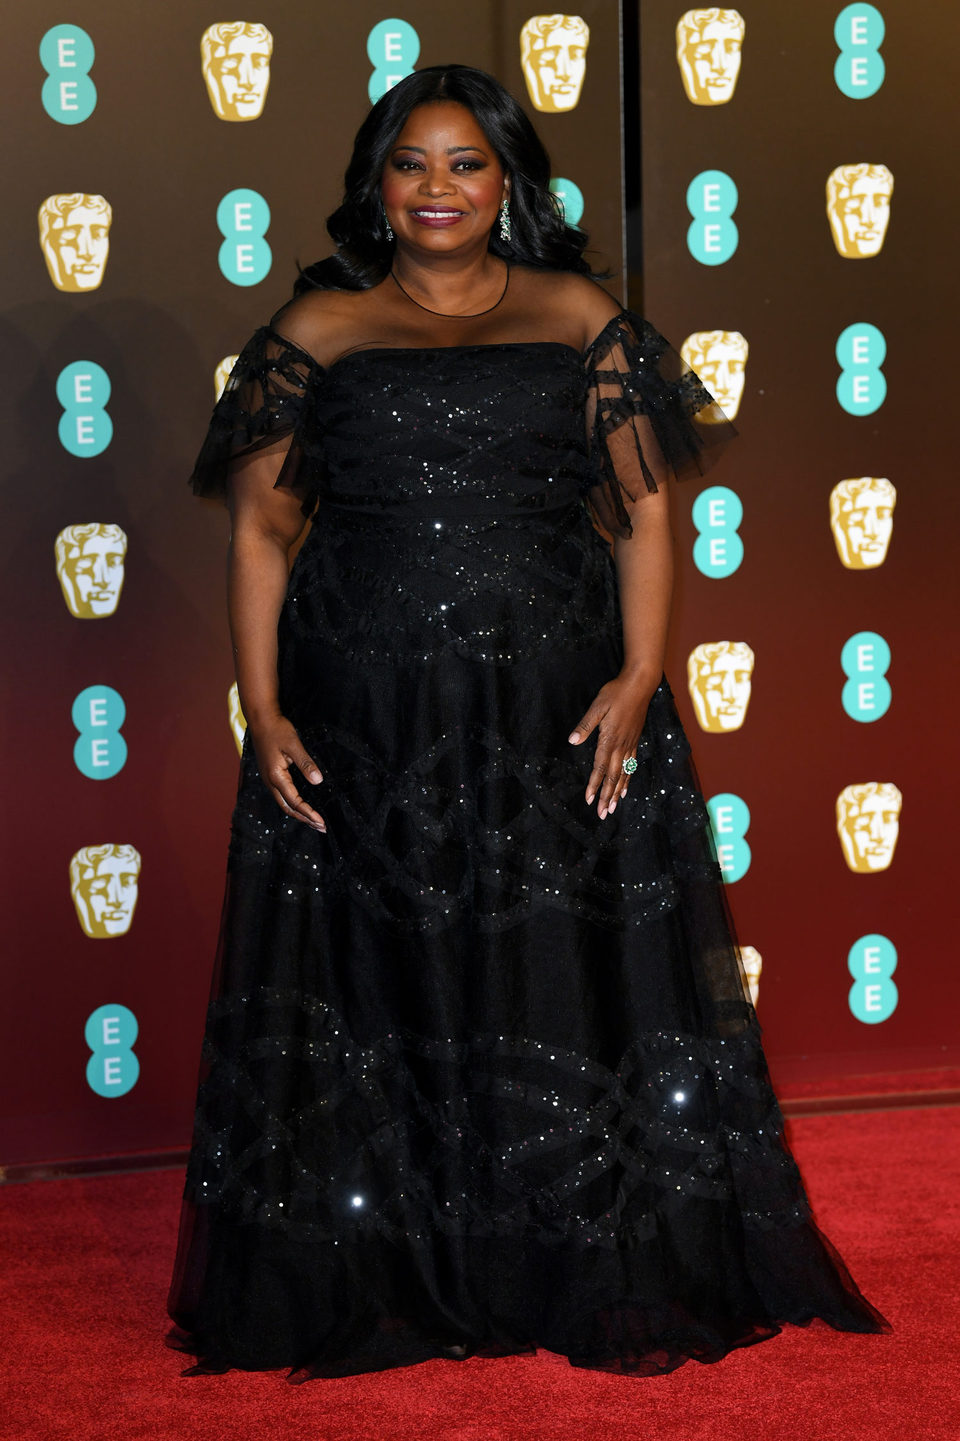 Octavia Spencer at the BAFTA Awards' 2018 red carpet